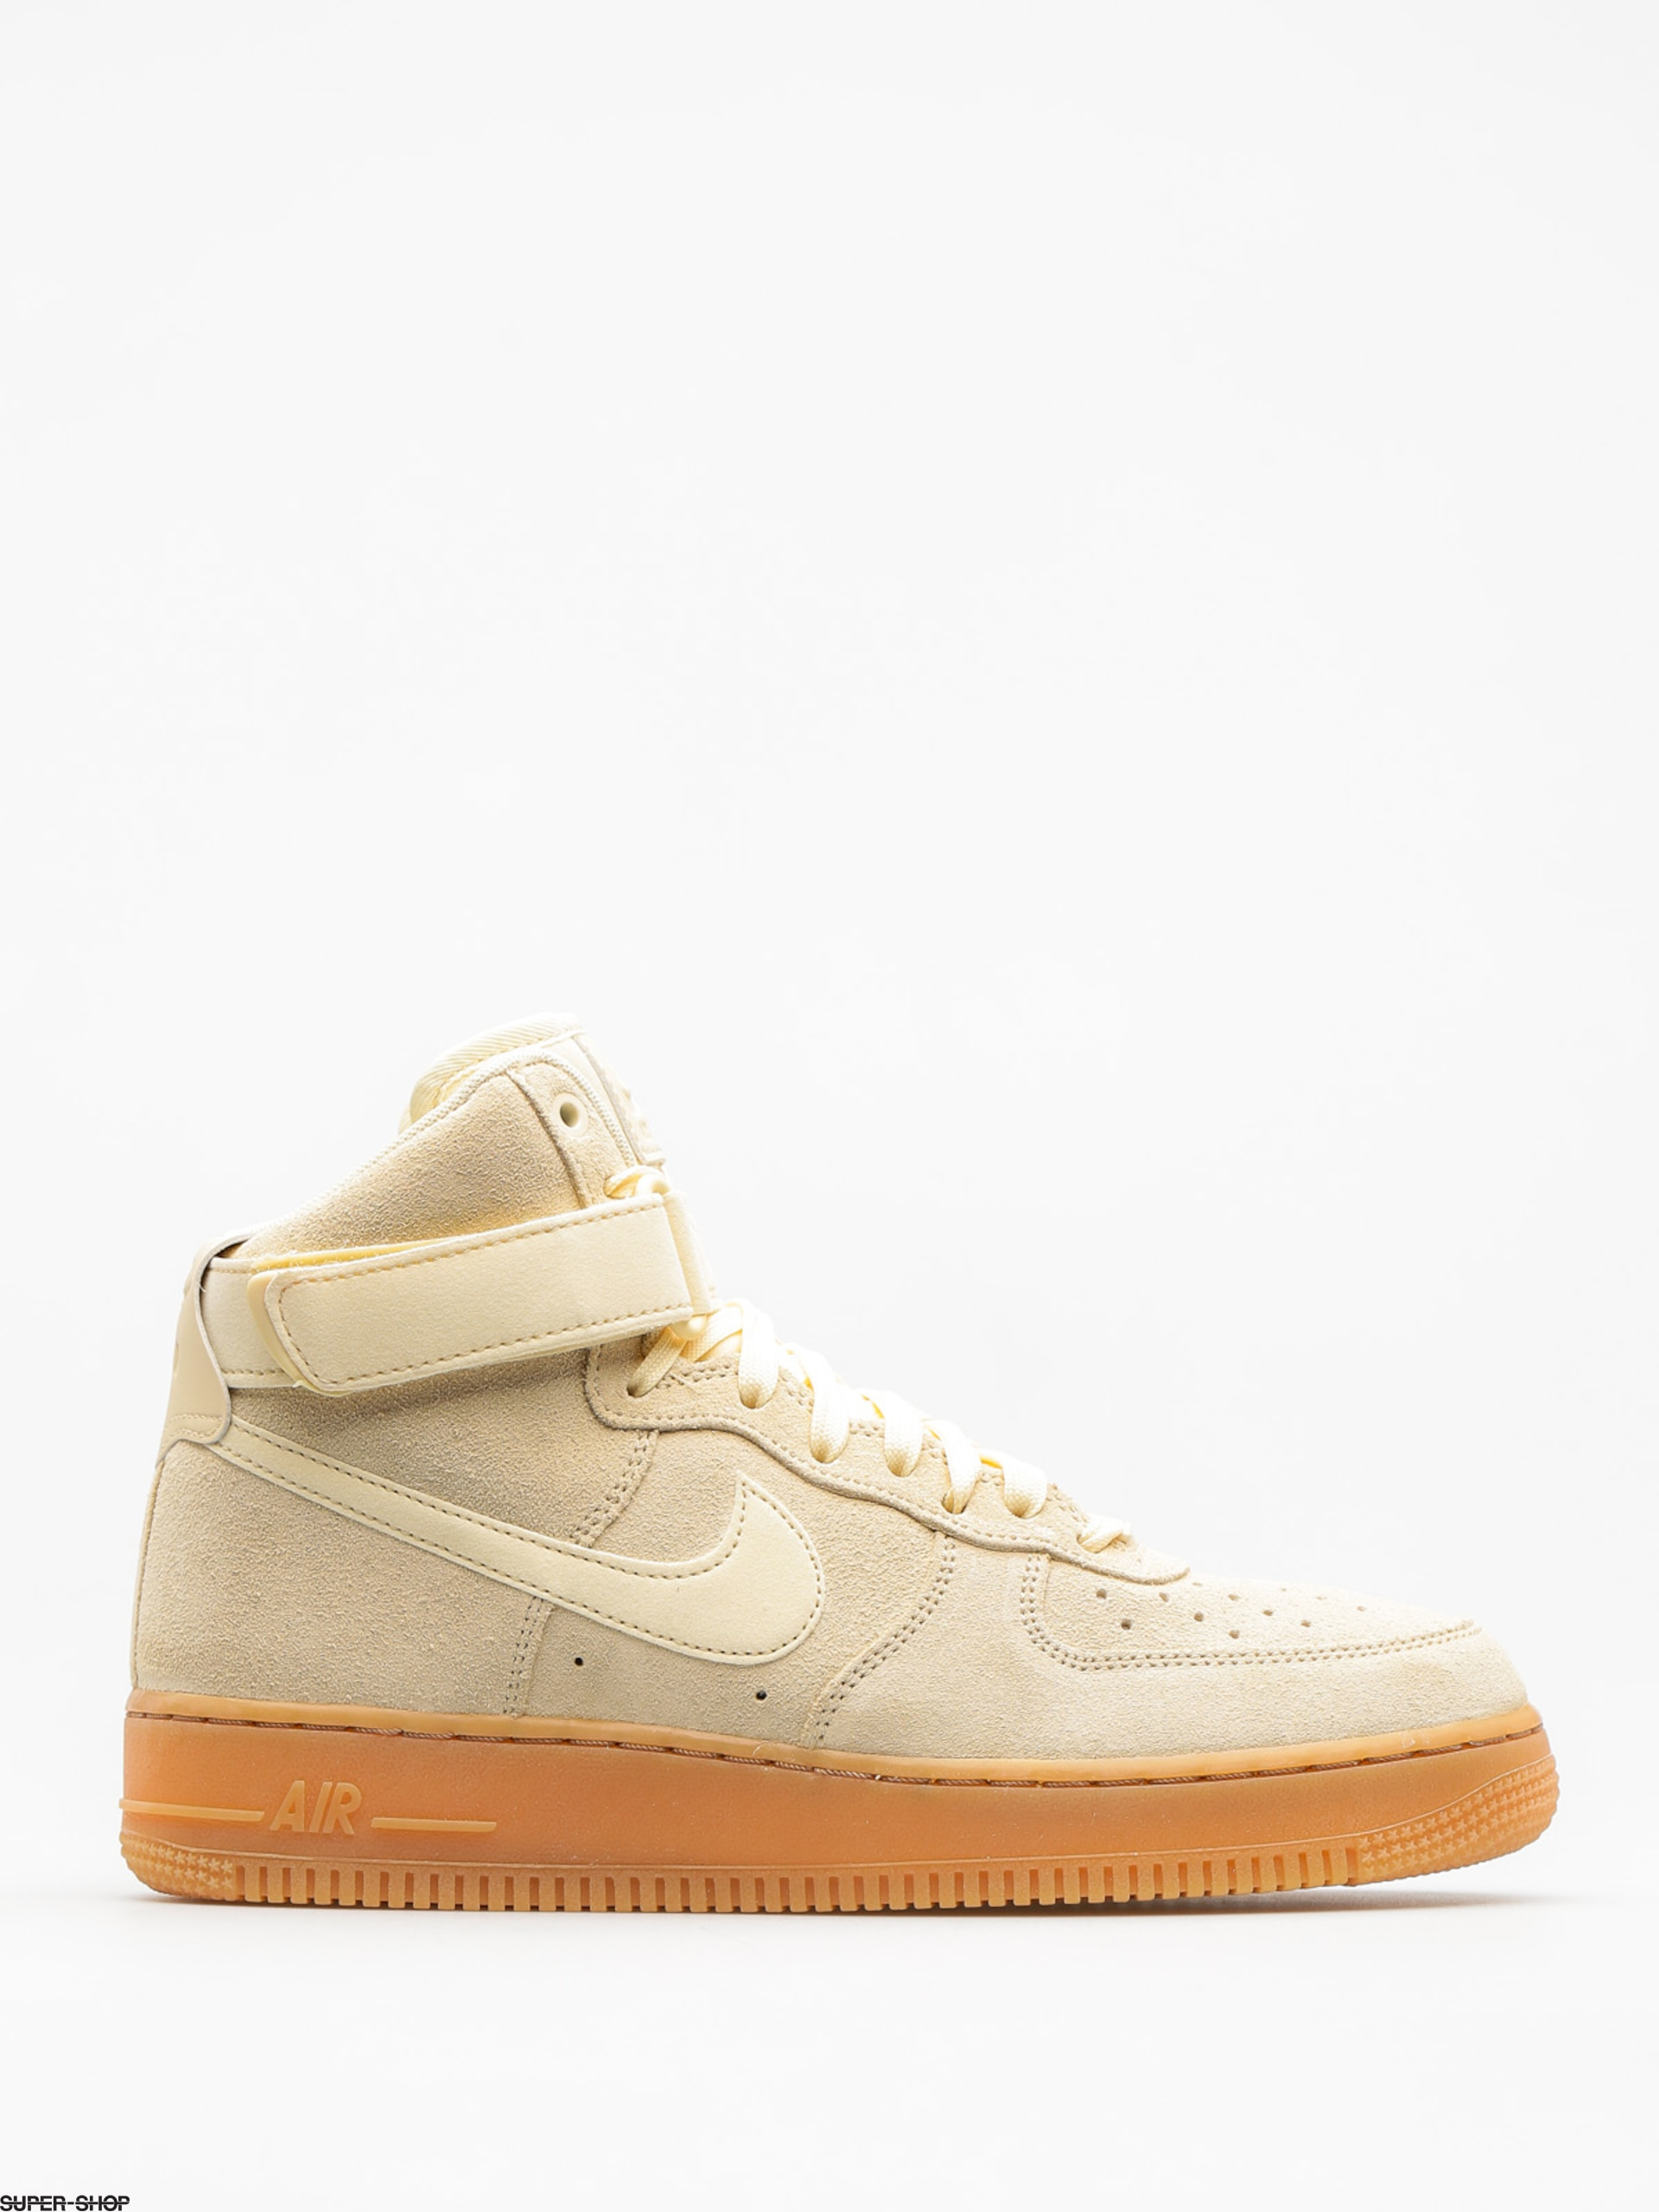 Nike Shoes Air Force 1 High 07 Lv8 (muslin/muslin gum med brown ivory)